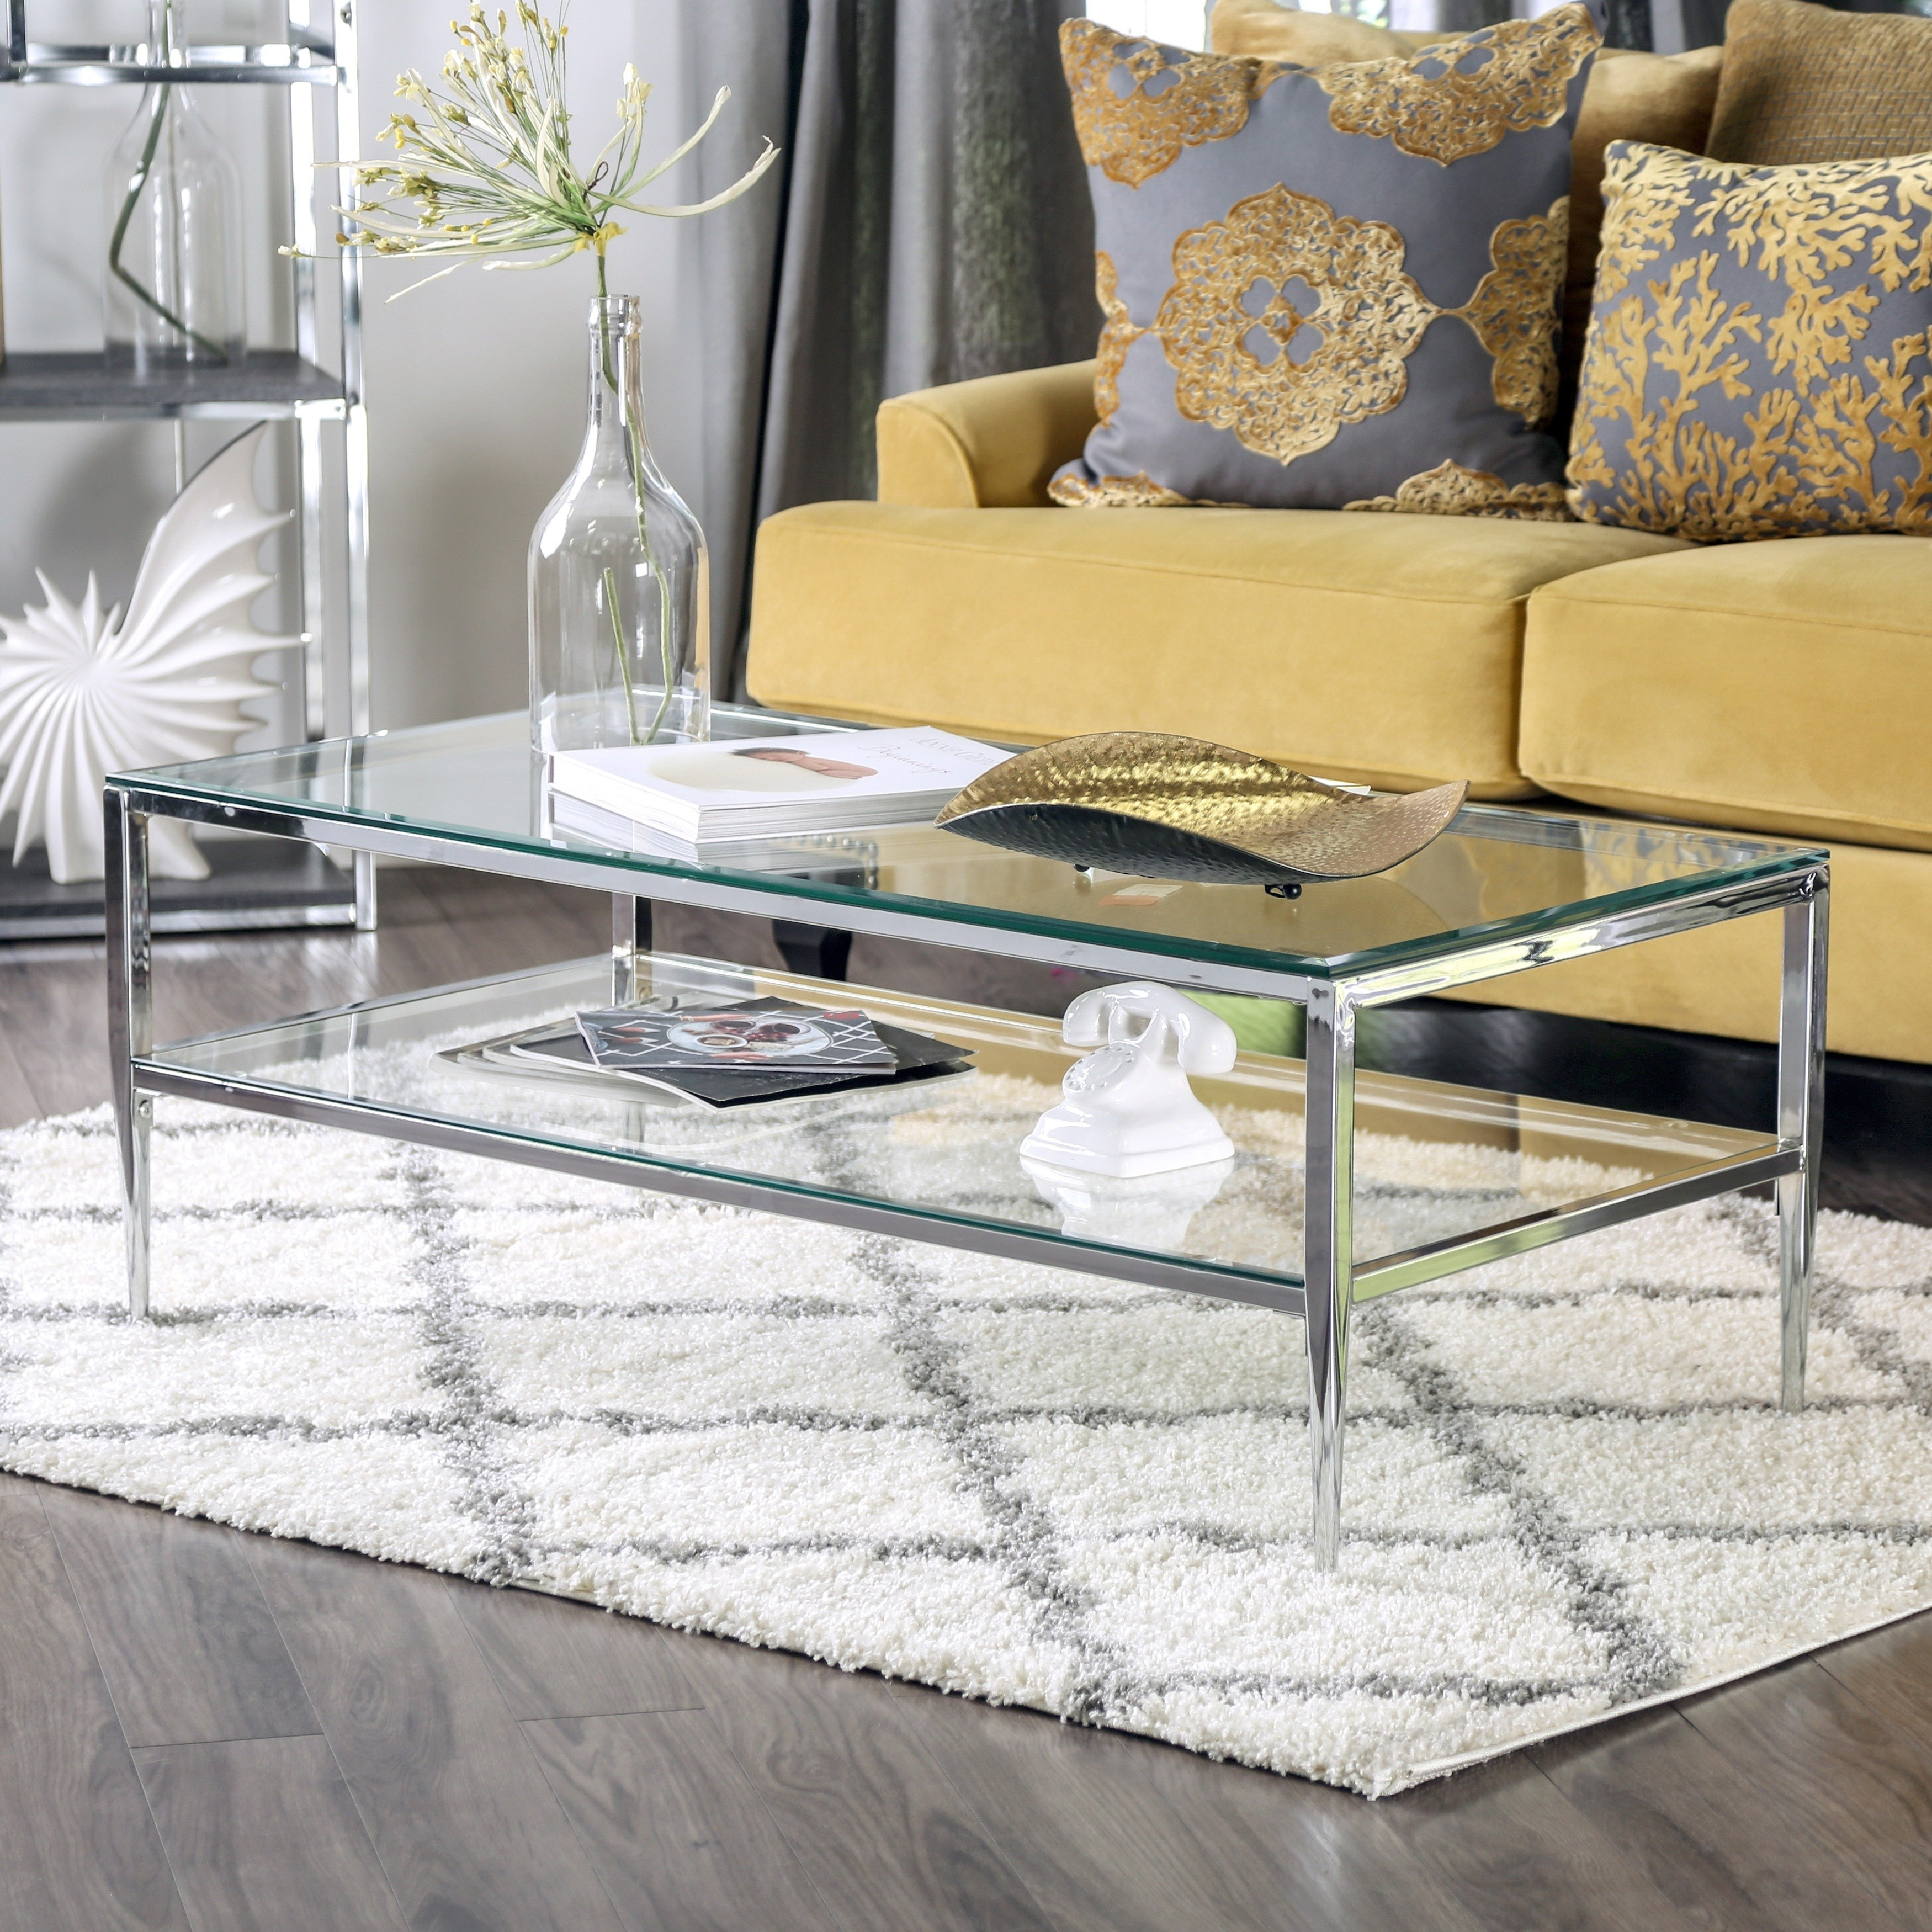 furniture america midiva contemporary metal piece accent table set coffee and sets free shipping today gold decor lucite pedestal drum stool hairpin leg end pottery barn round